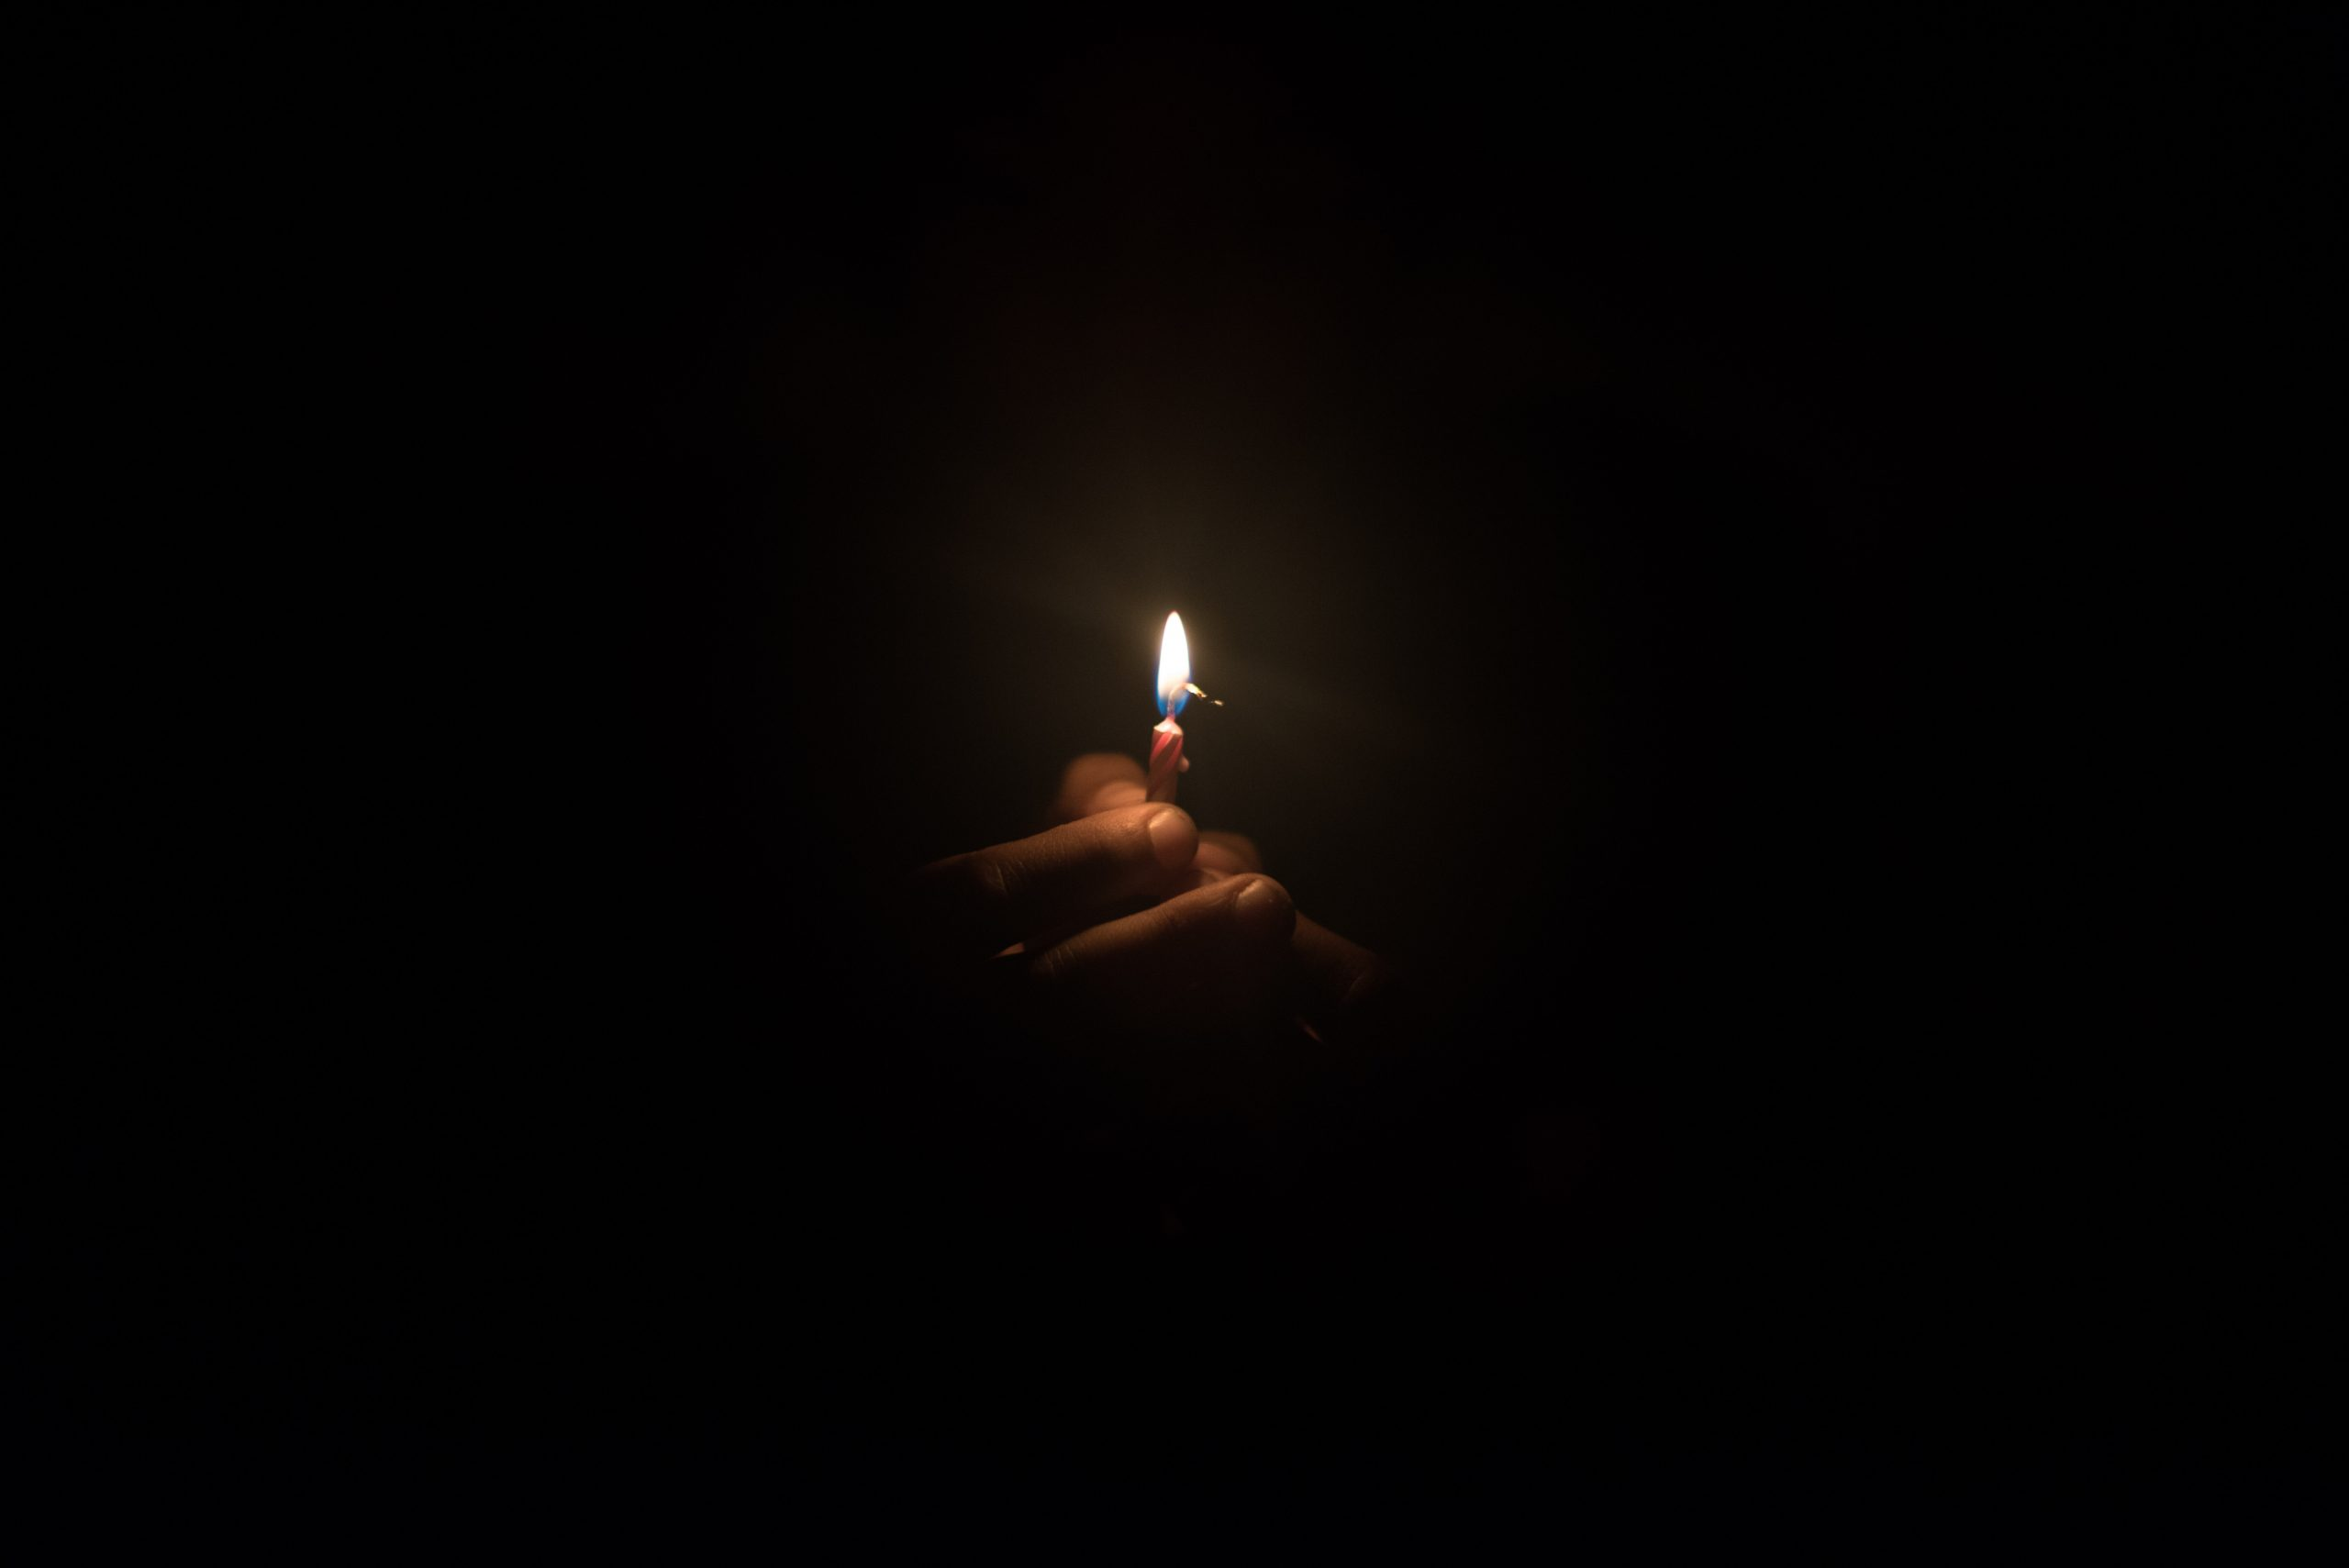 Hand holding burning candle in the dark